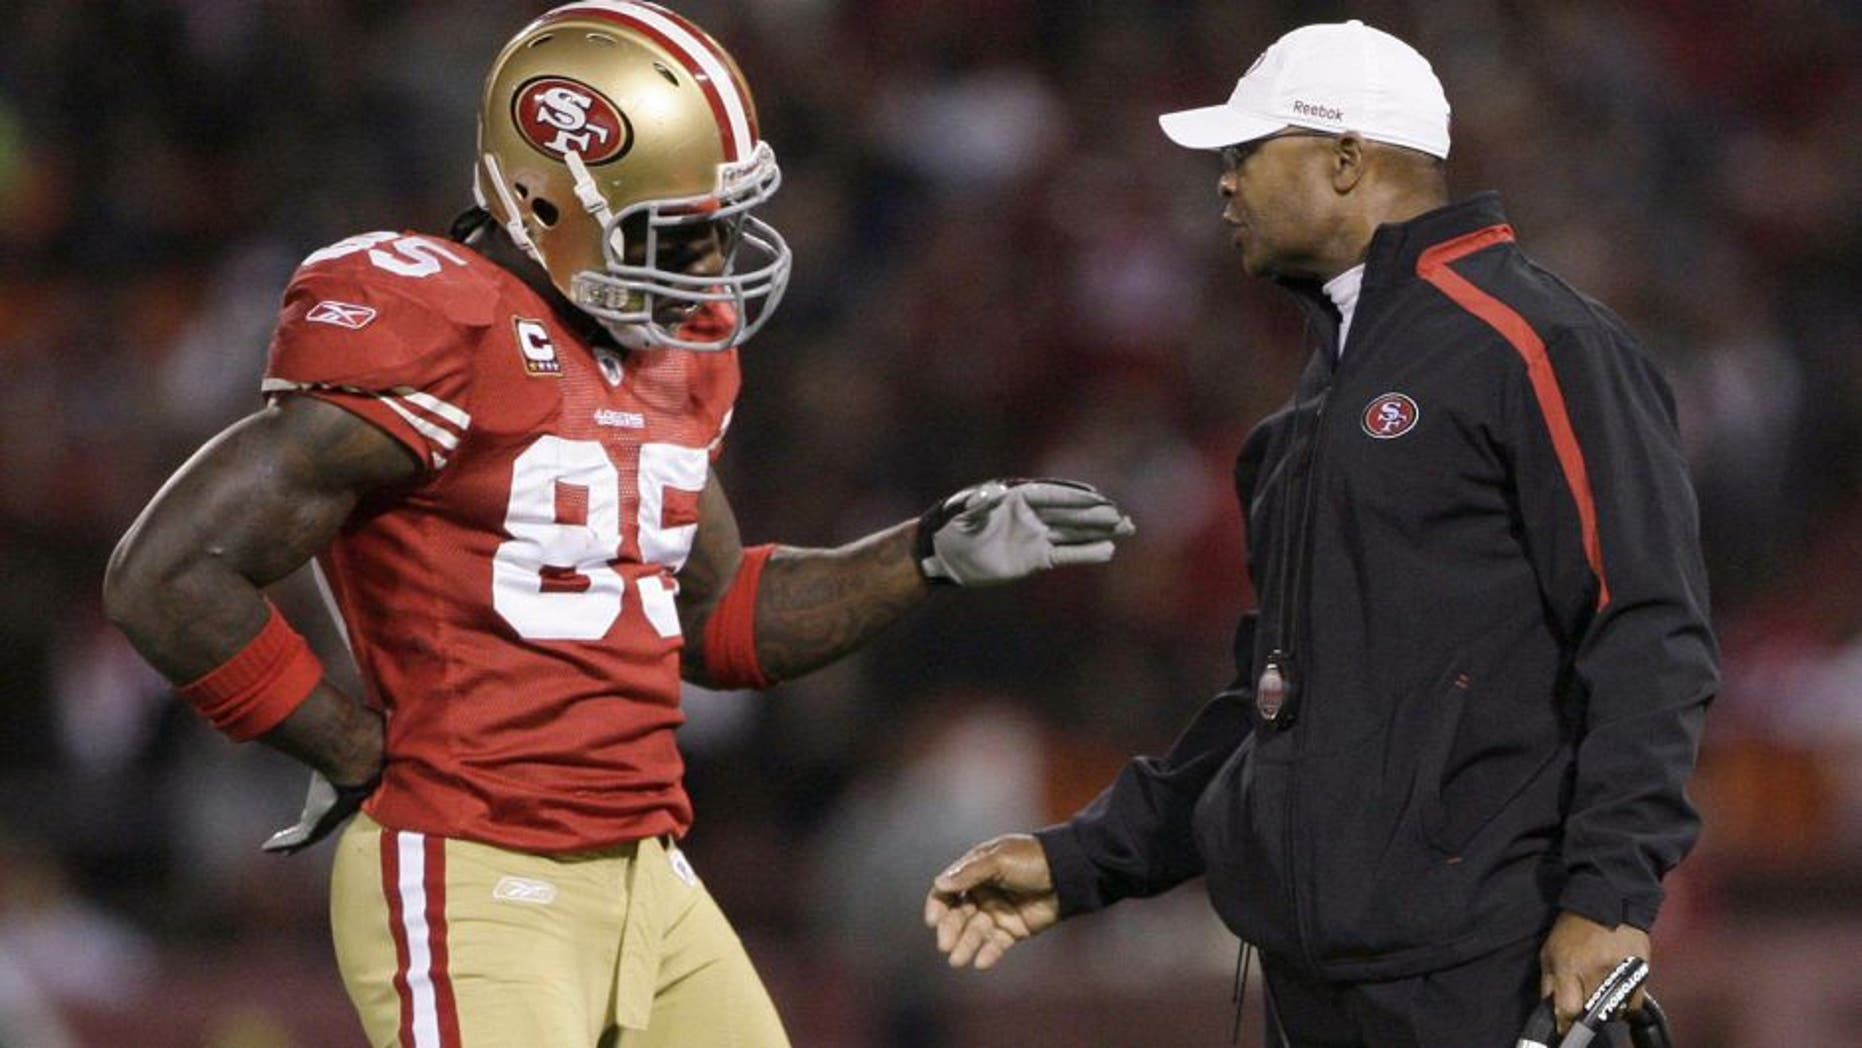 San Francisco 49ers head coach Mike Singletary talks with player Vernon Davis during an injury timeout in the first quarter against the Chicago Bears at Candlestick Park in San Francisco, California, Thursday, November 12, 2009. The 49ers defeated the Bears, 10-6. (Jose M. Osorio/Chicago Tribune/MCT)